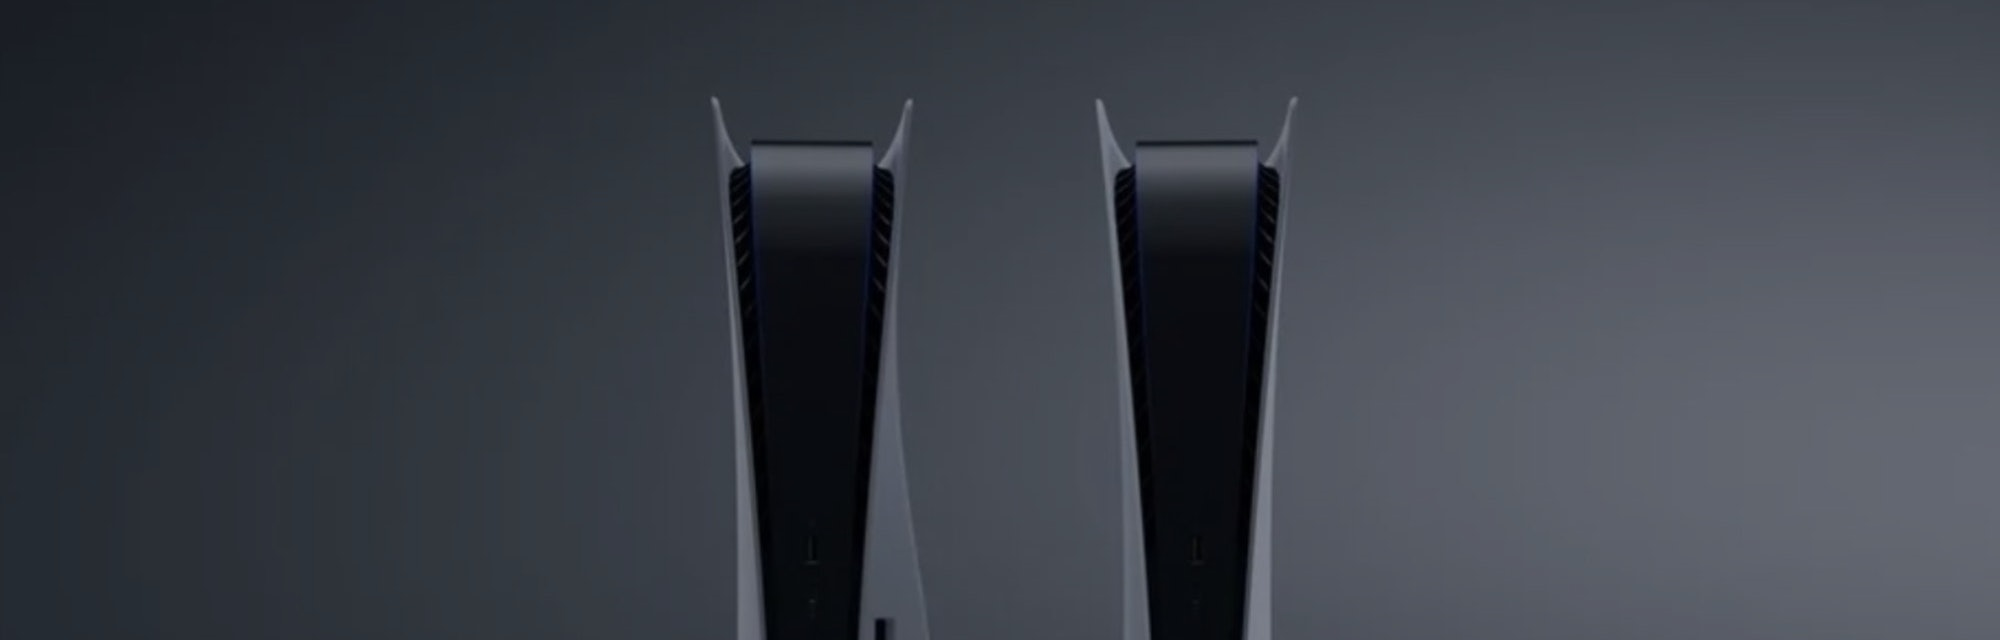 ps5 and ps5 digital